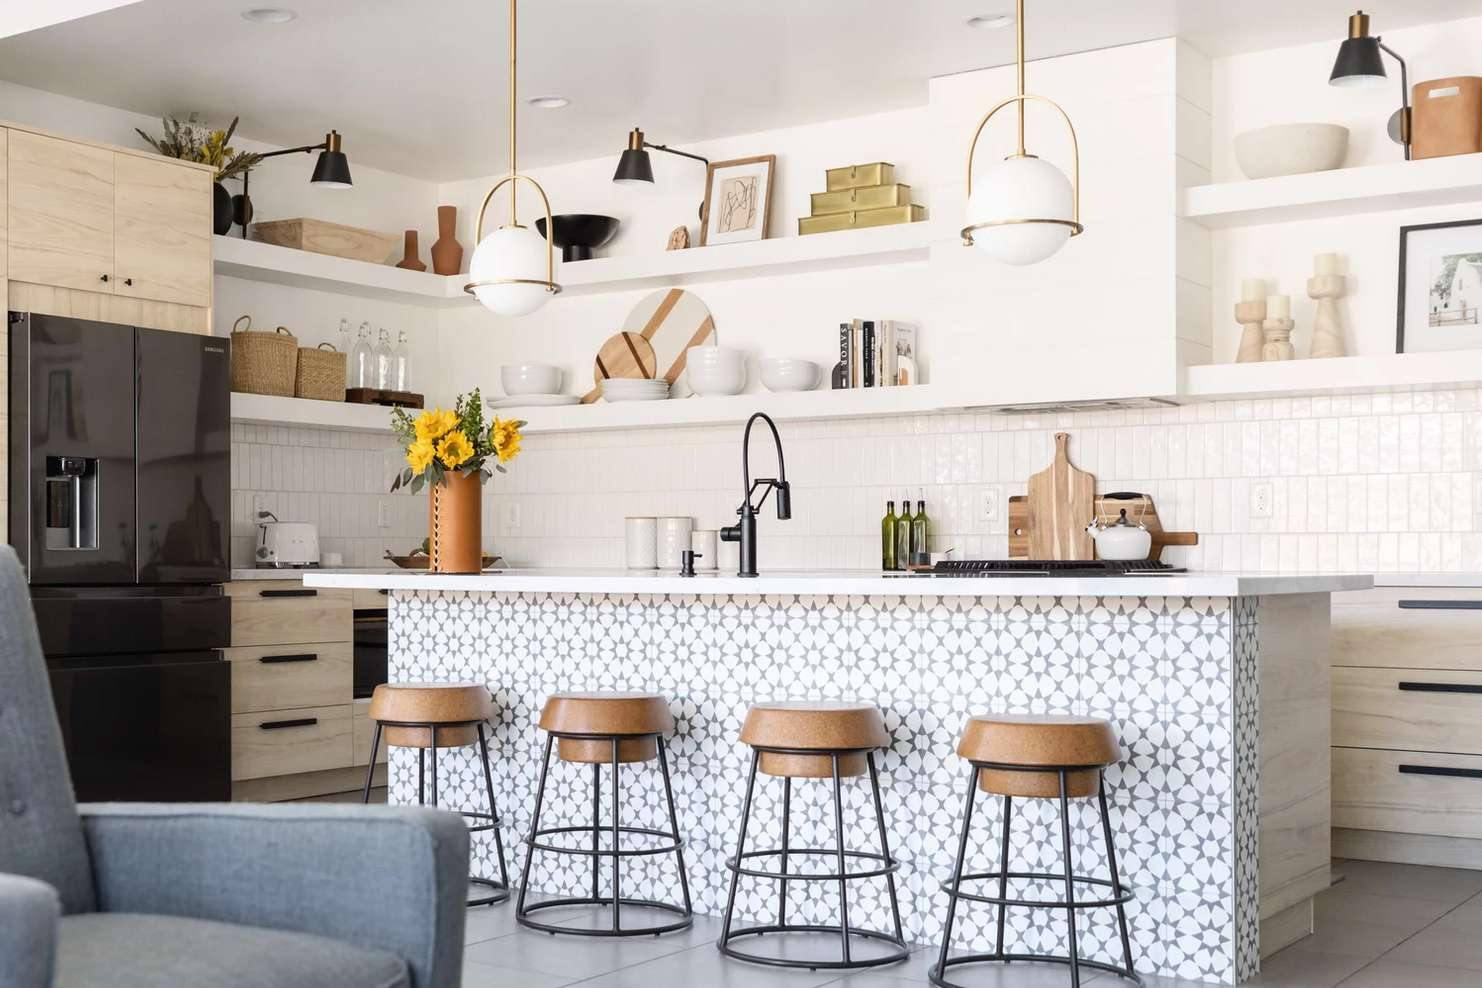 Mixing brass and black metals in a kitchen